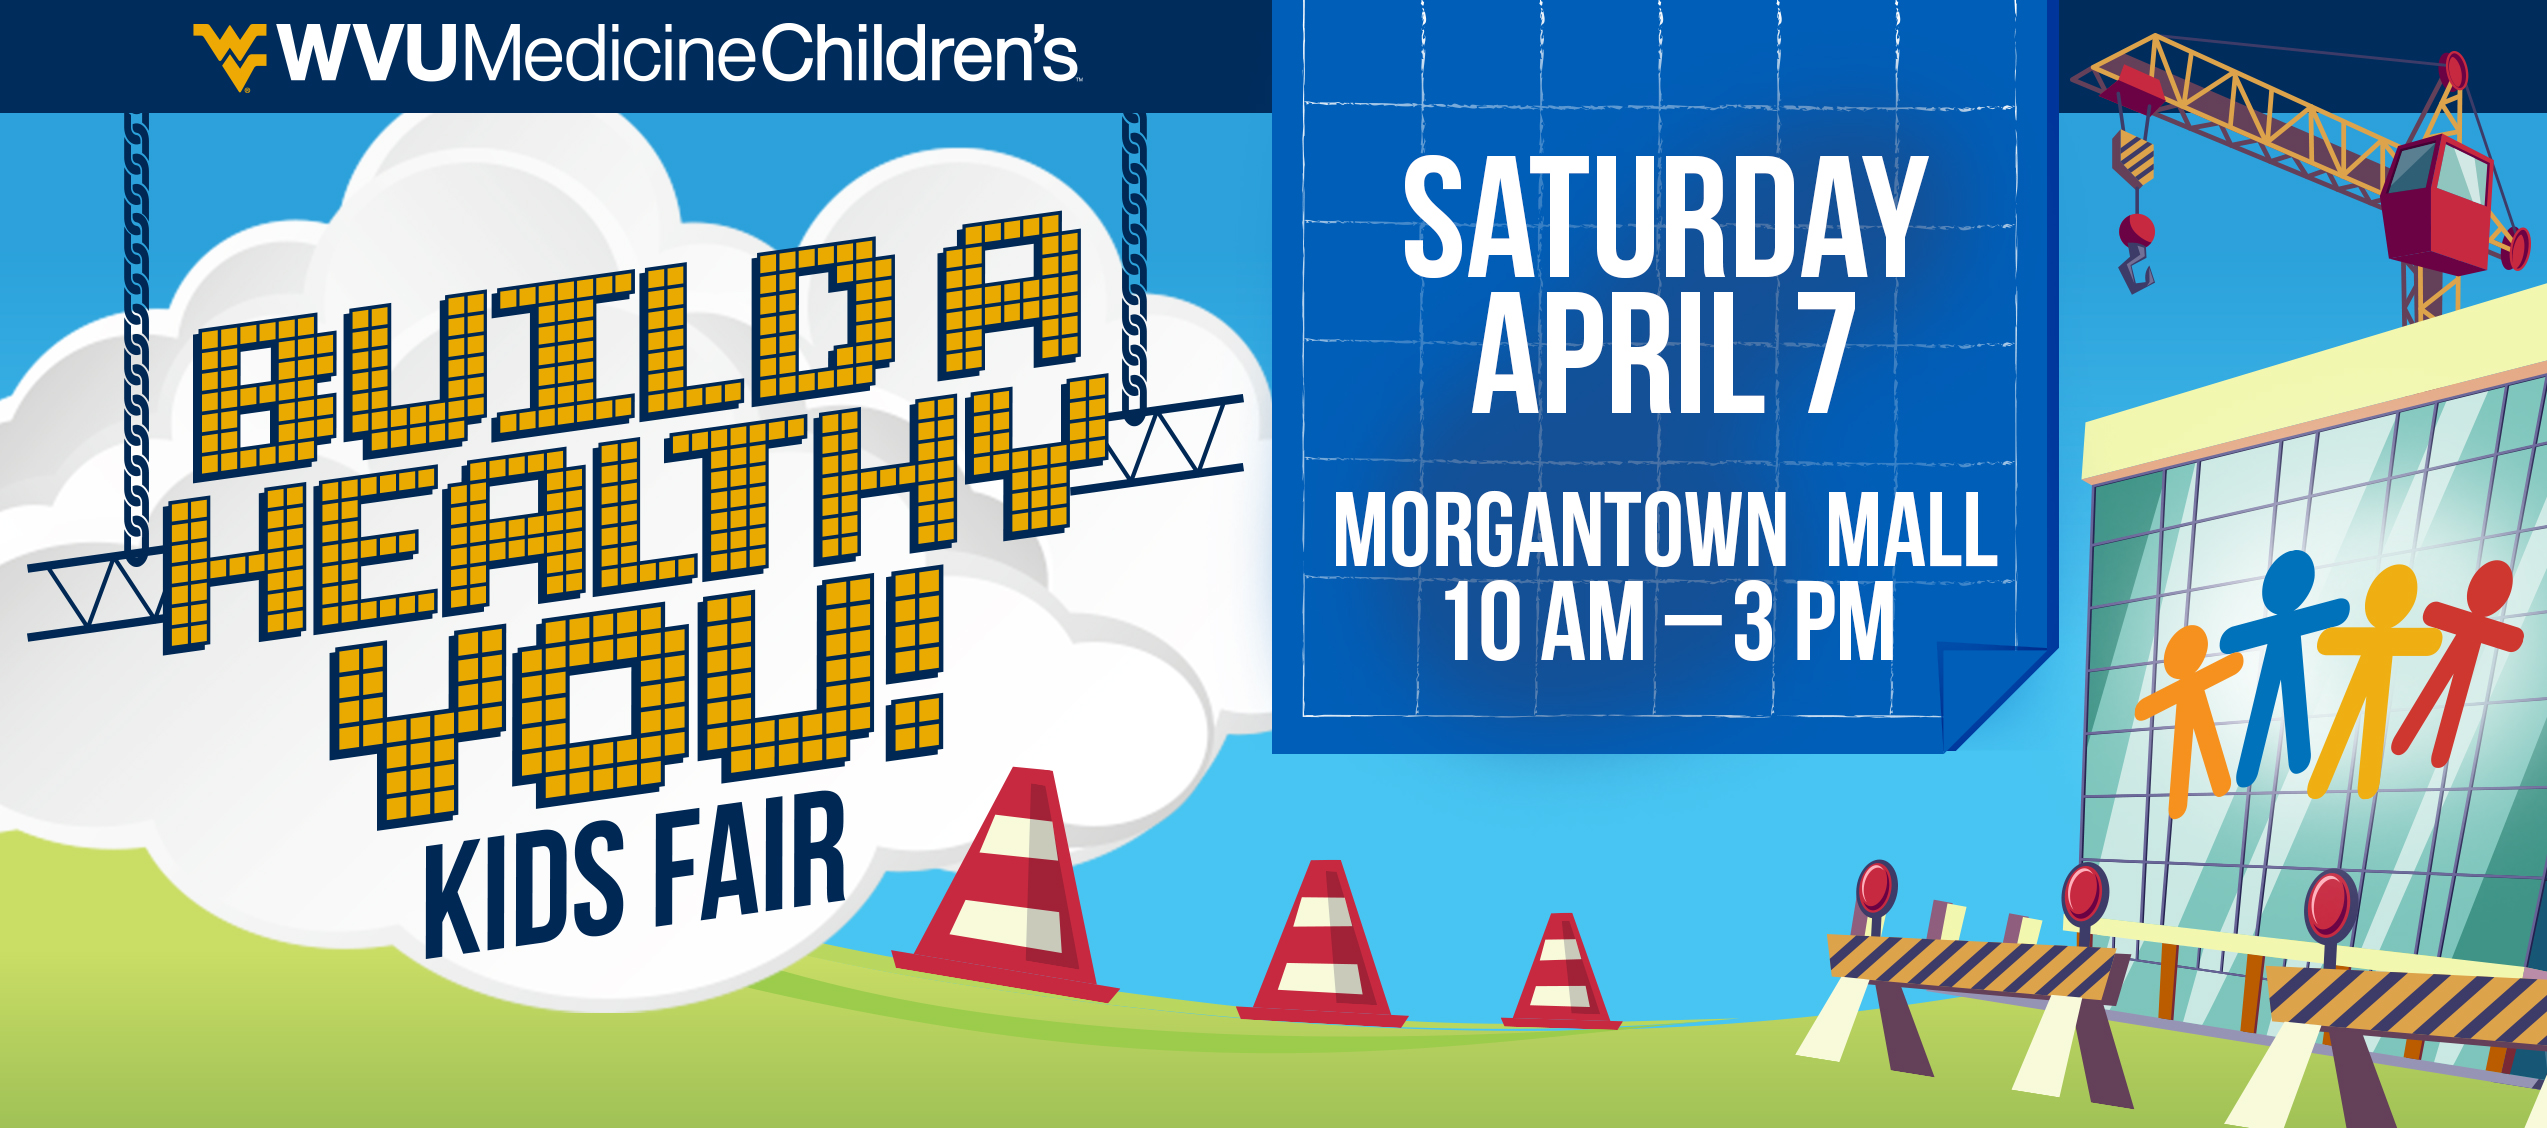 Build A Healthy You at the WVU Medicine Children's Kids Fair